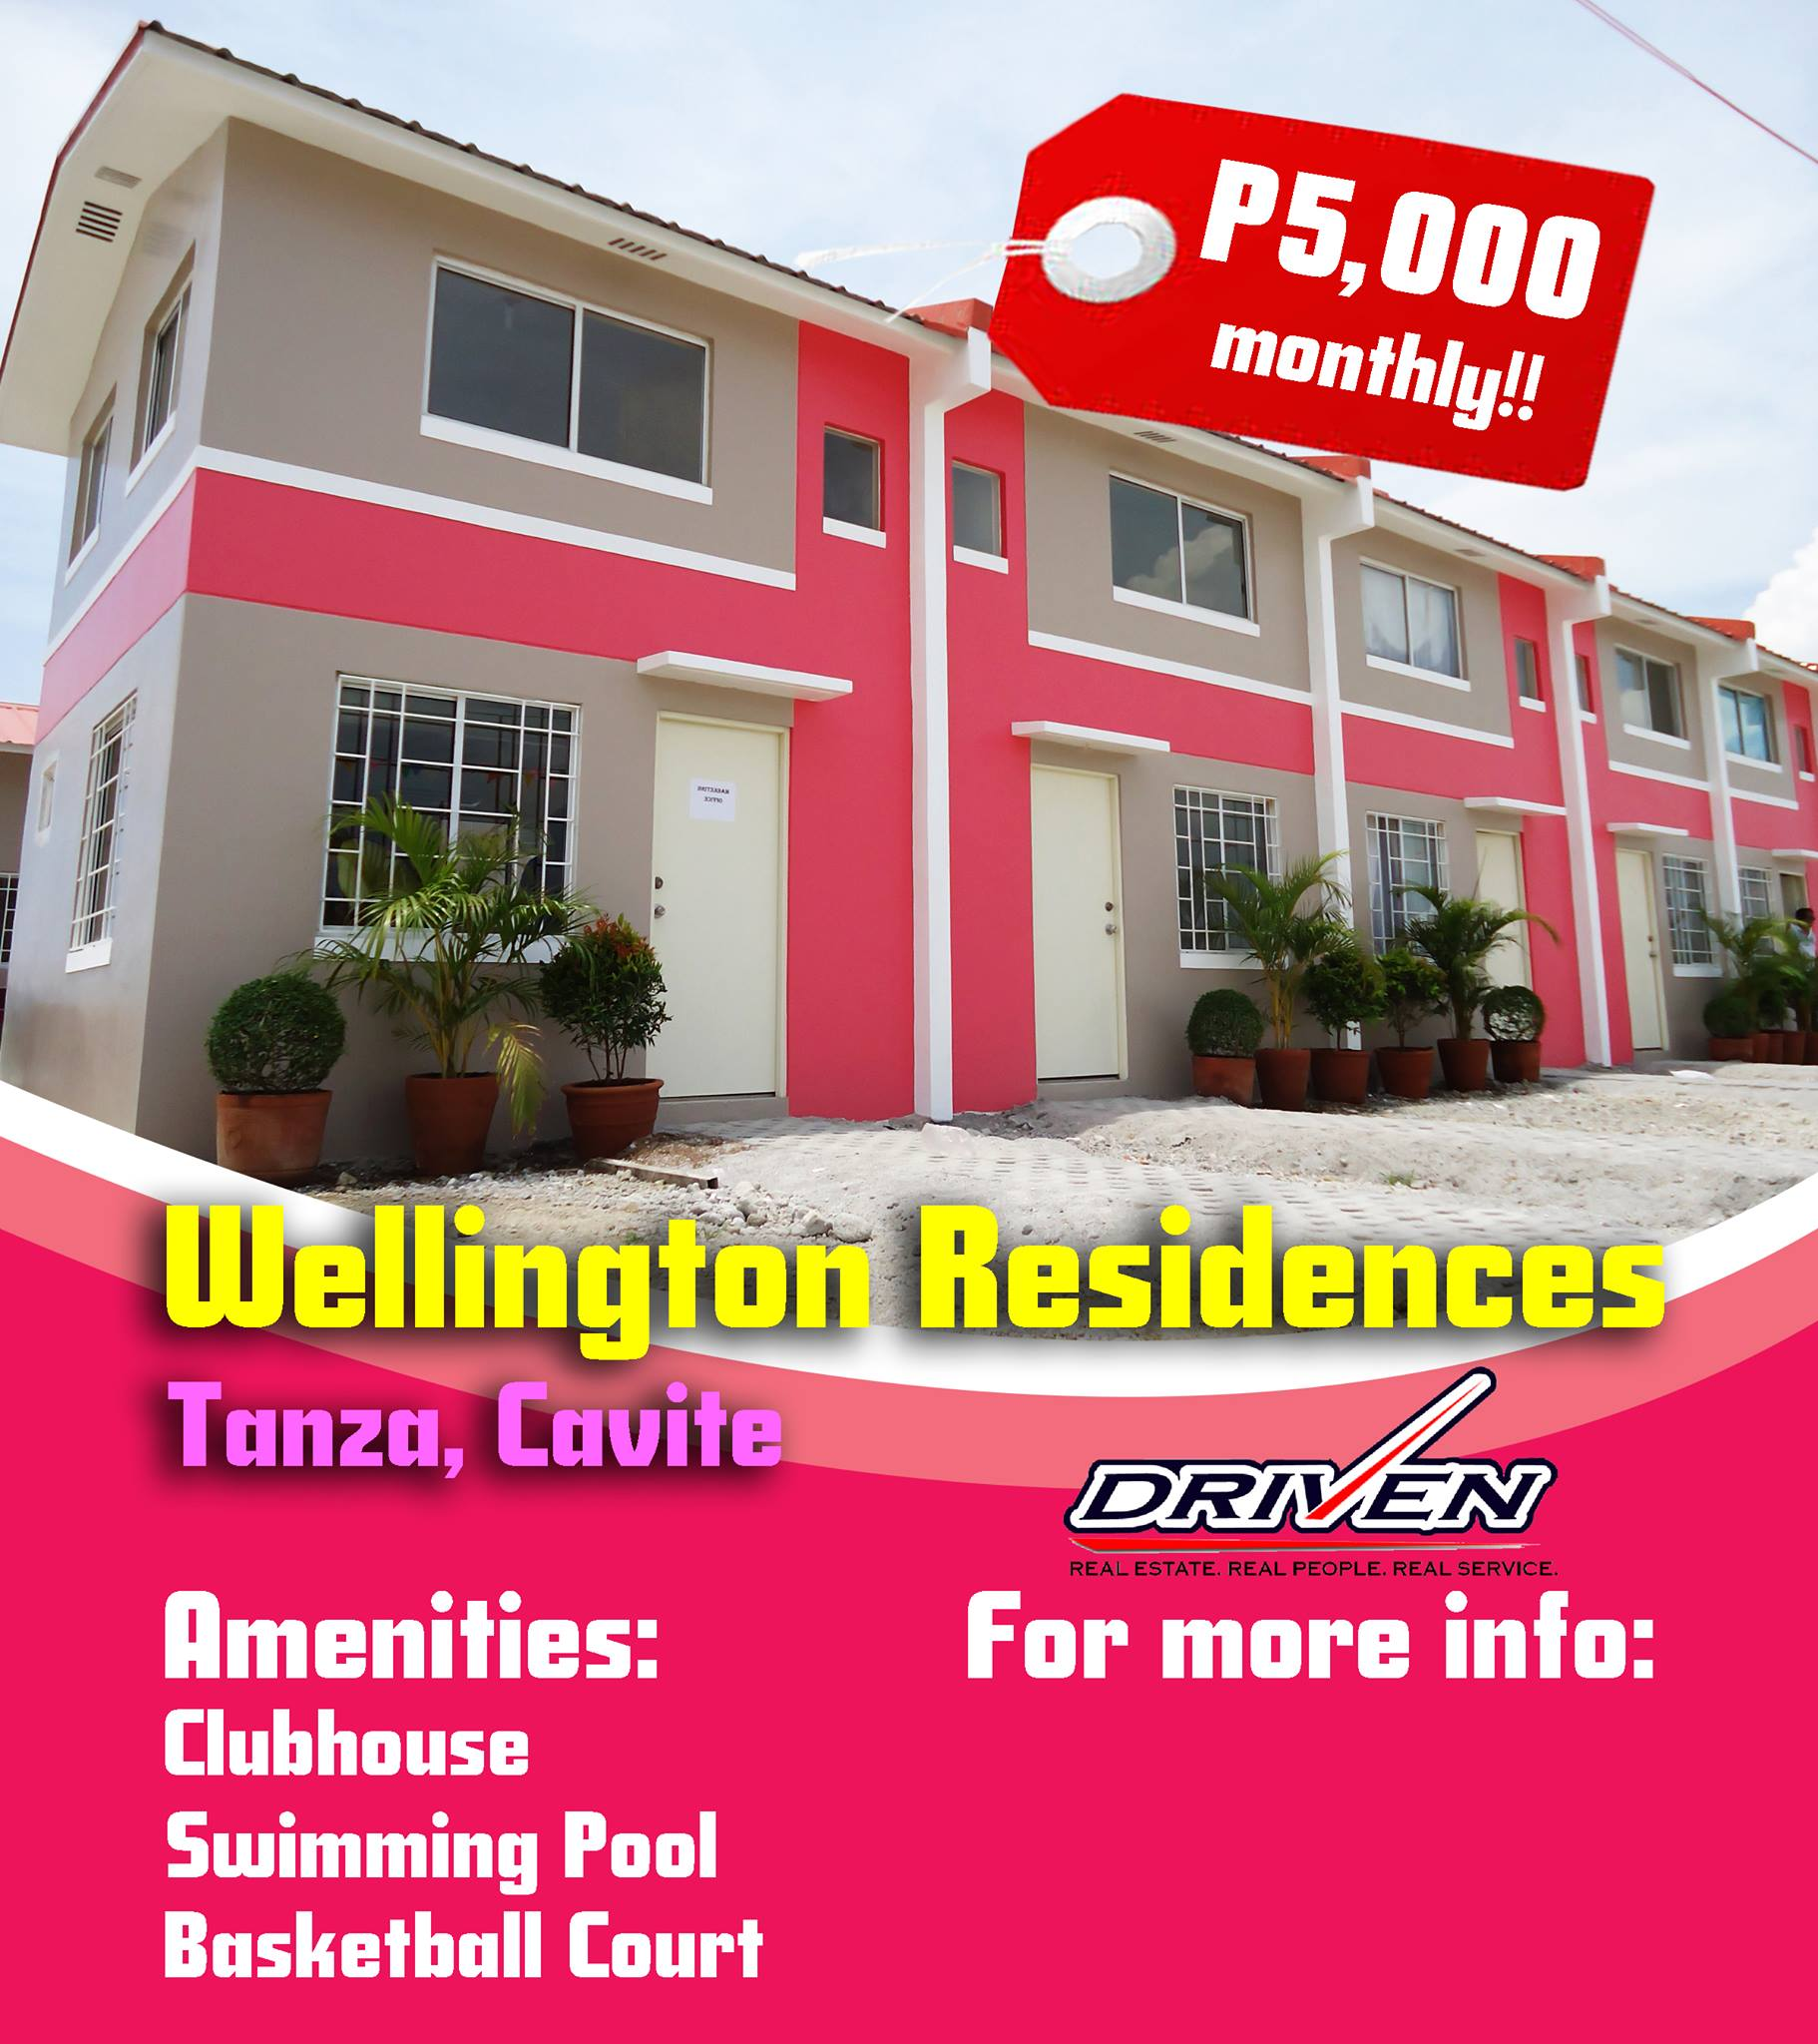 The BEST Rent to Own Pag-IBIG Housing in Cavite